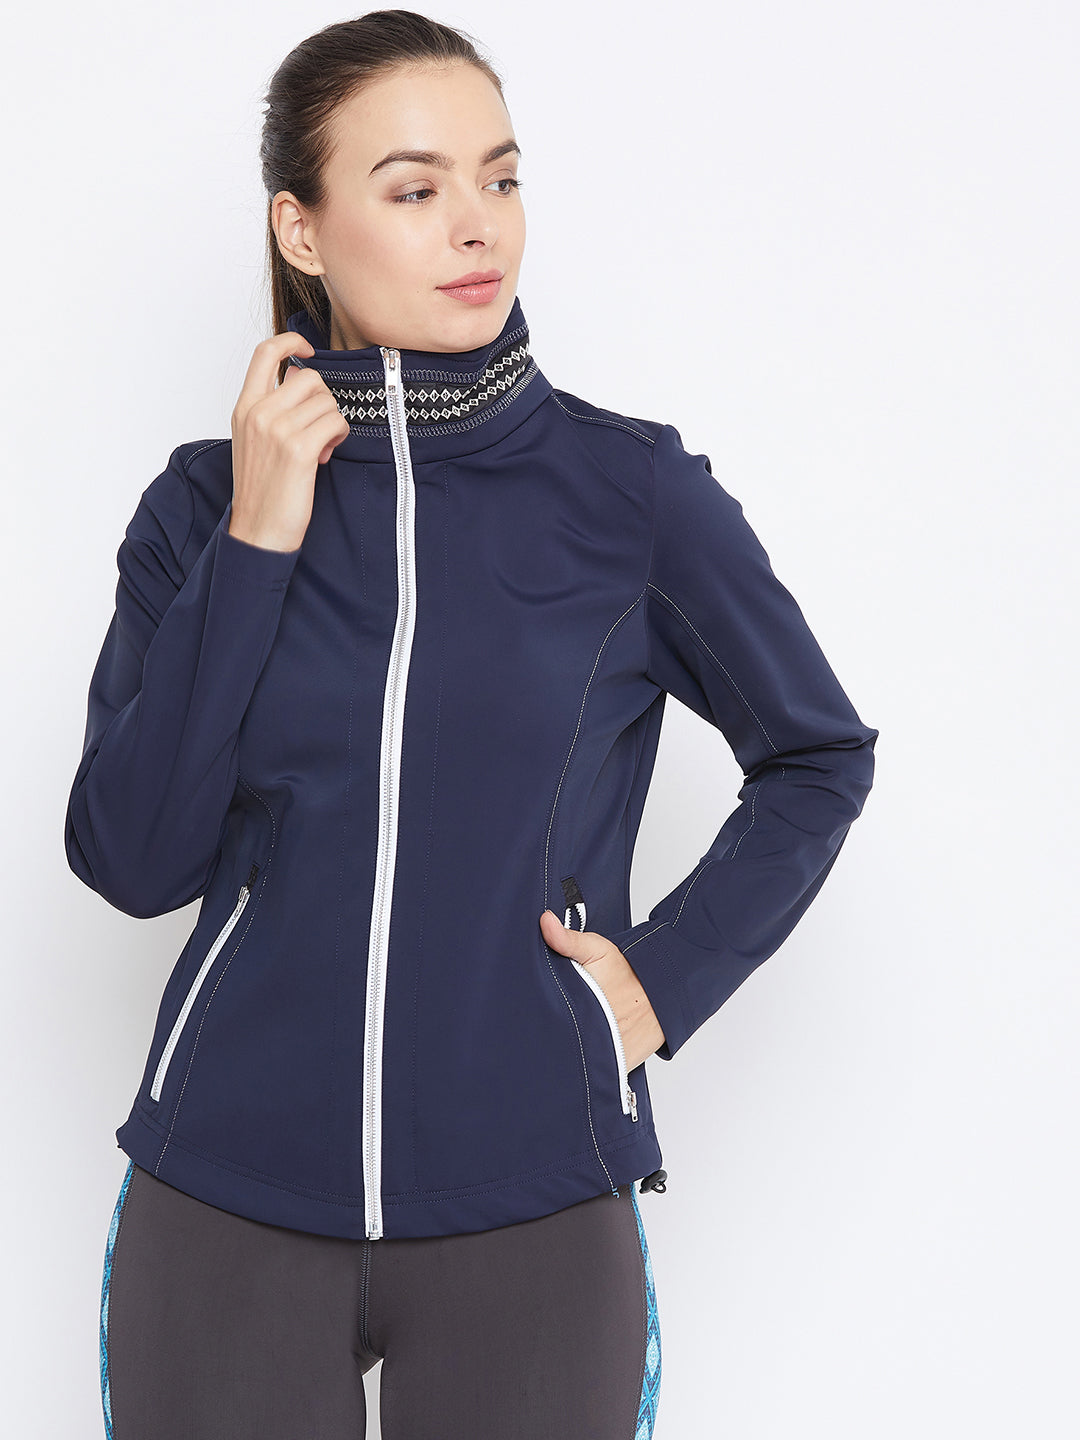 JUMP USA Women Navy Blue Solid Sporty Jacket - JUMP USA